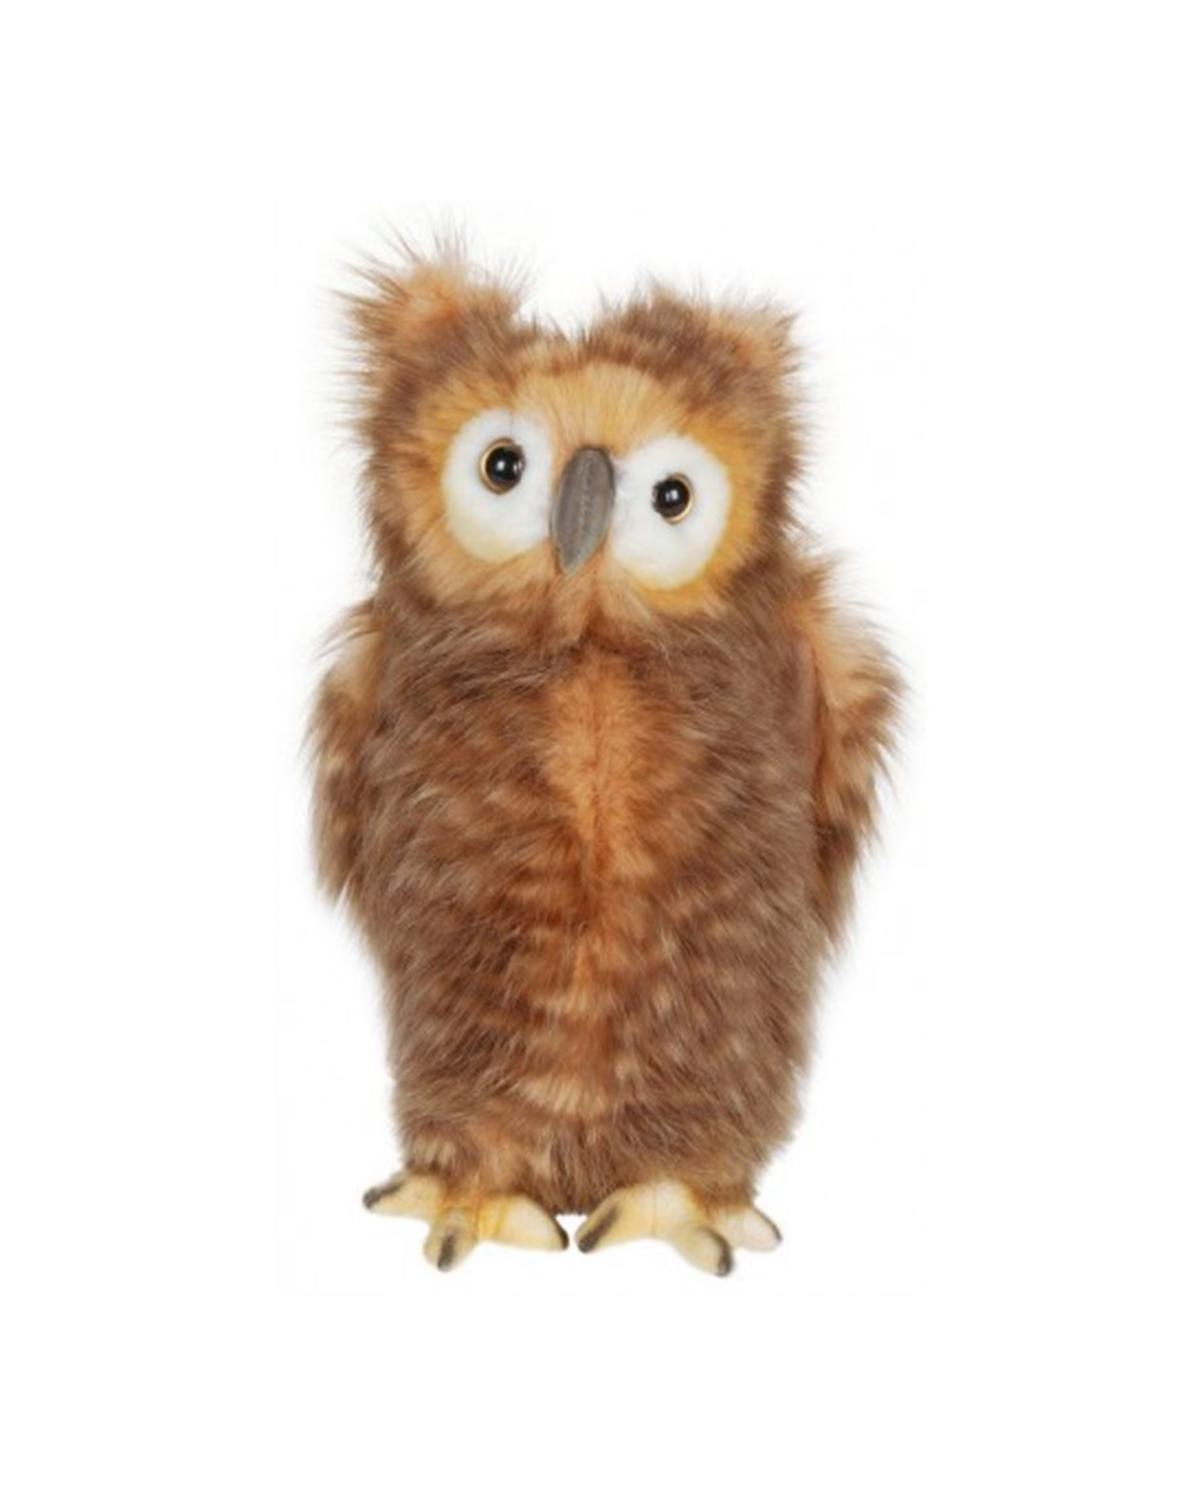 Little hansa toys play Little Brown Owl